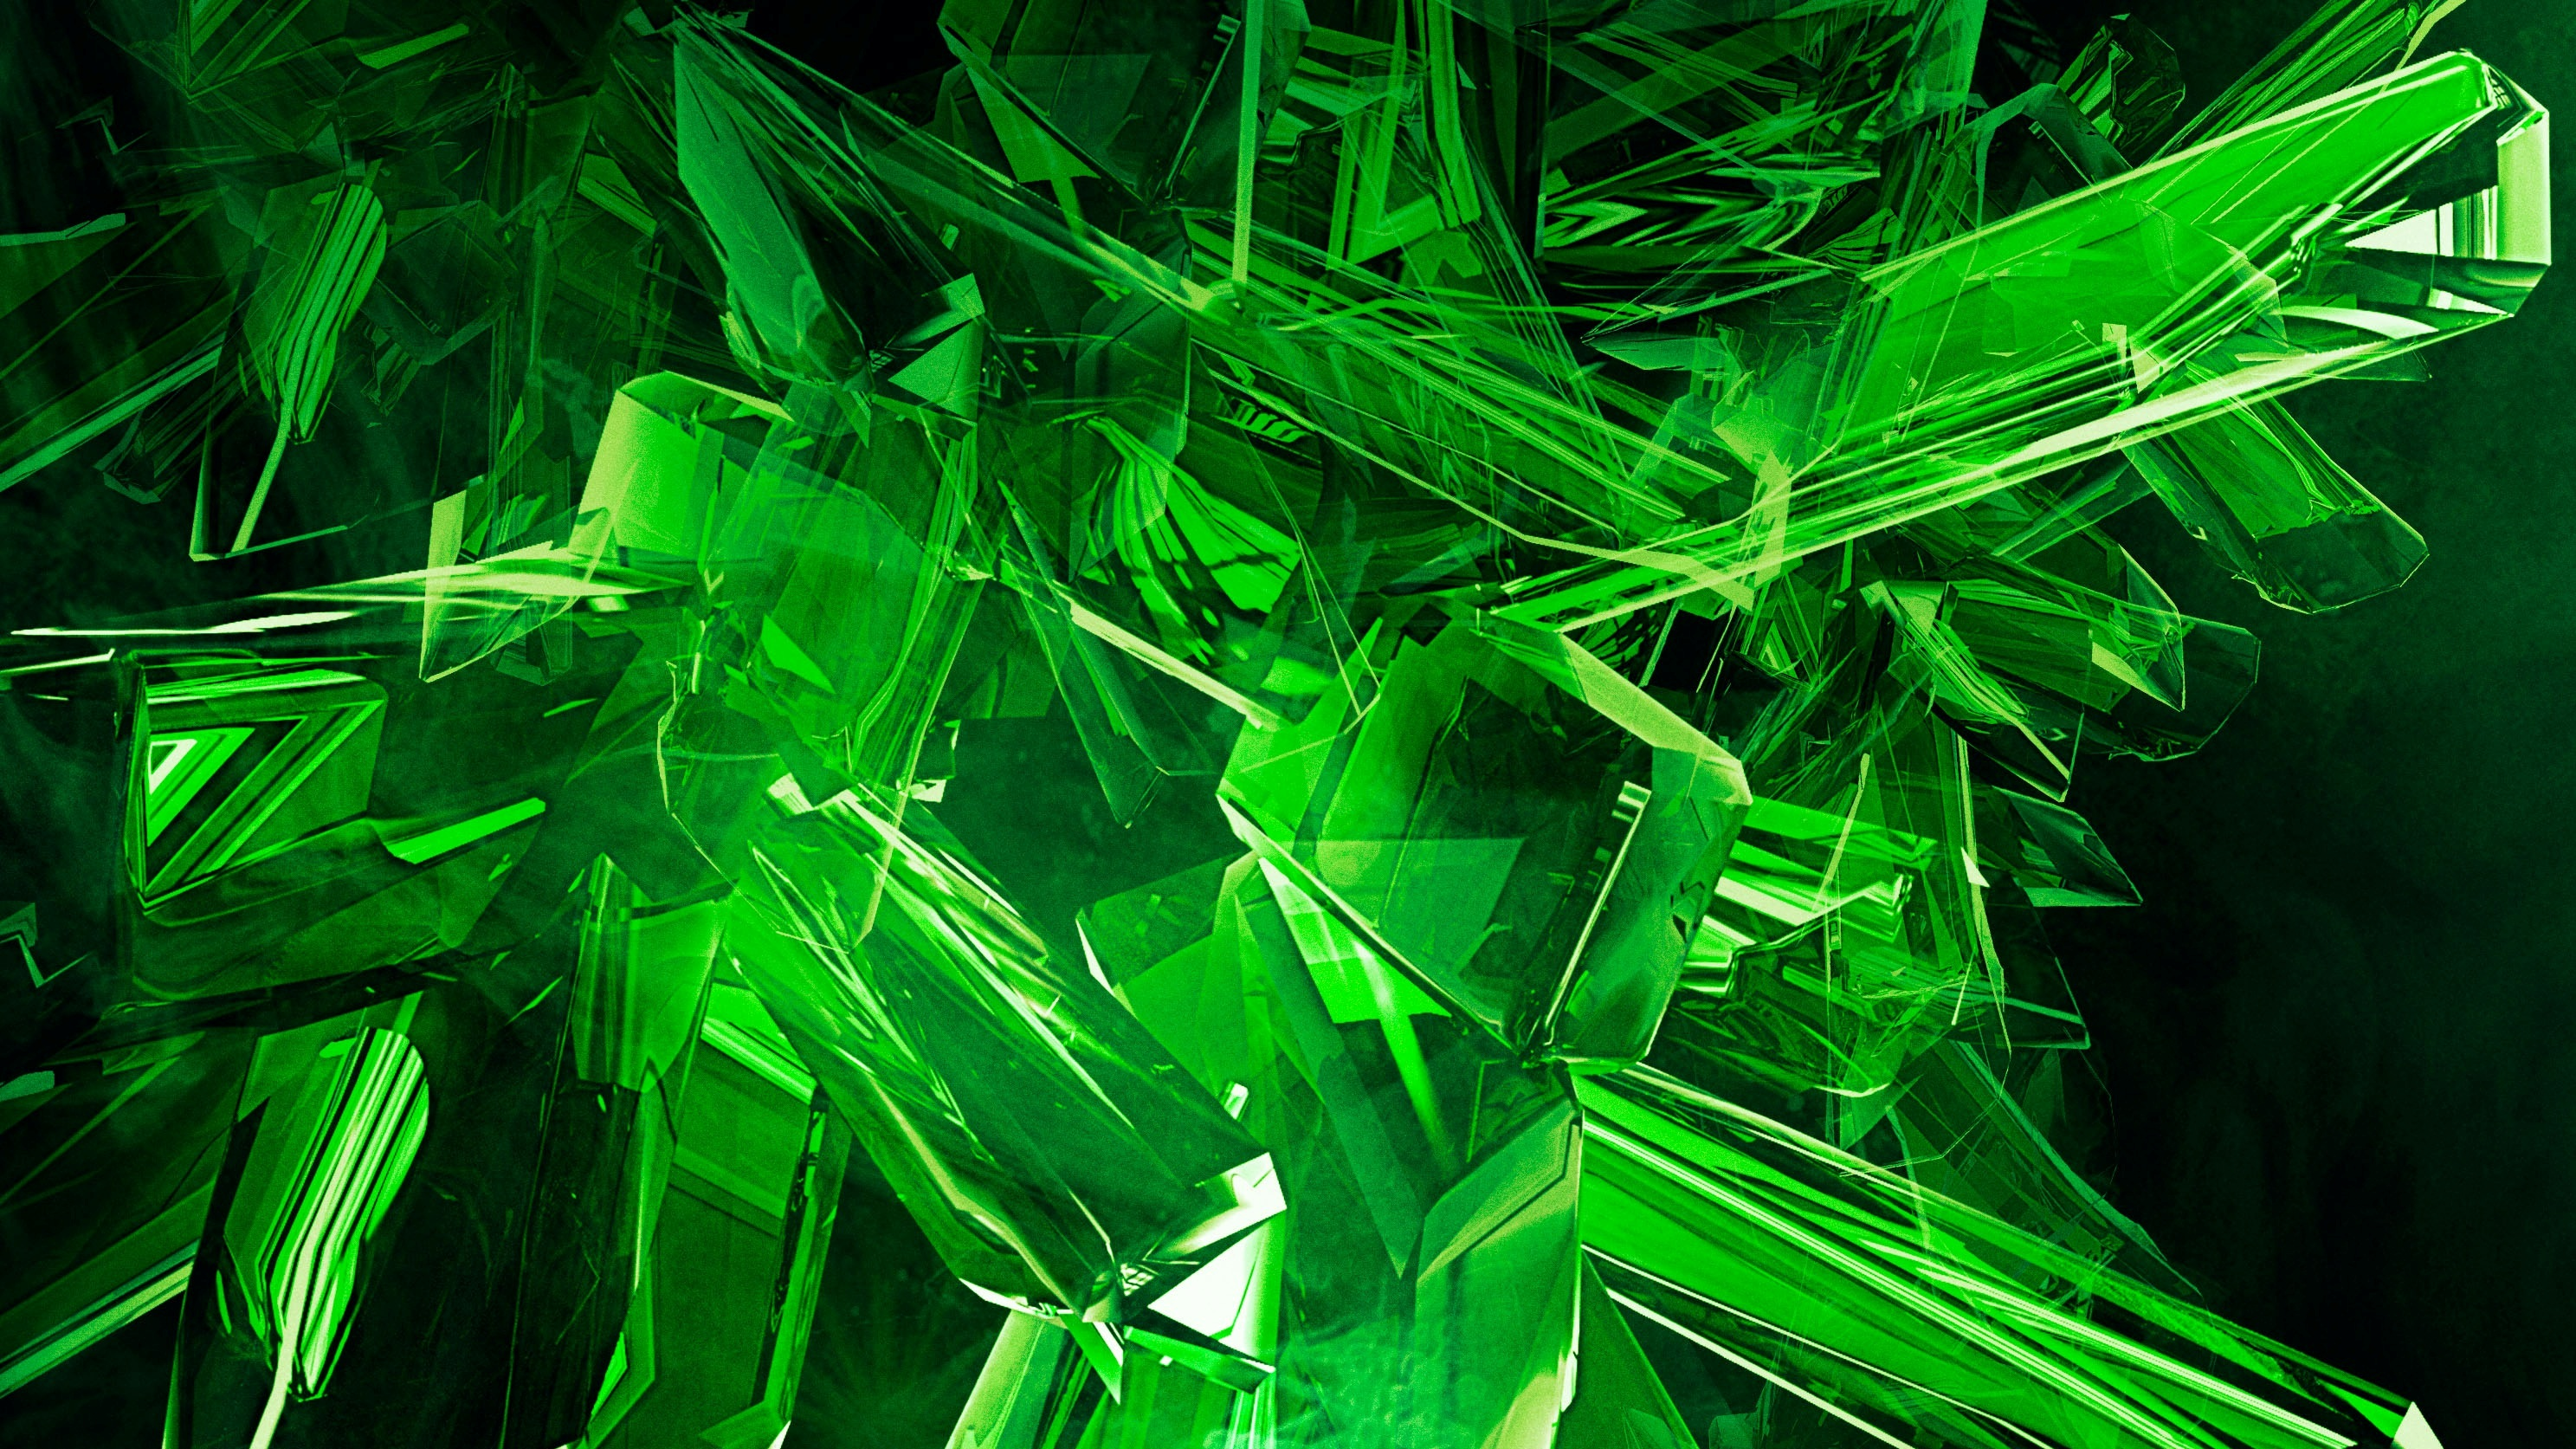 green 3d view abstract gems cool desktop hd wallpaper 14591 Image 2975x1673